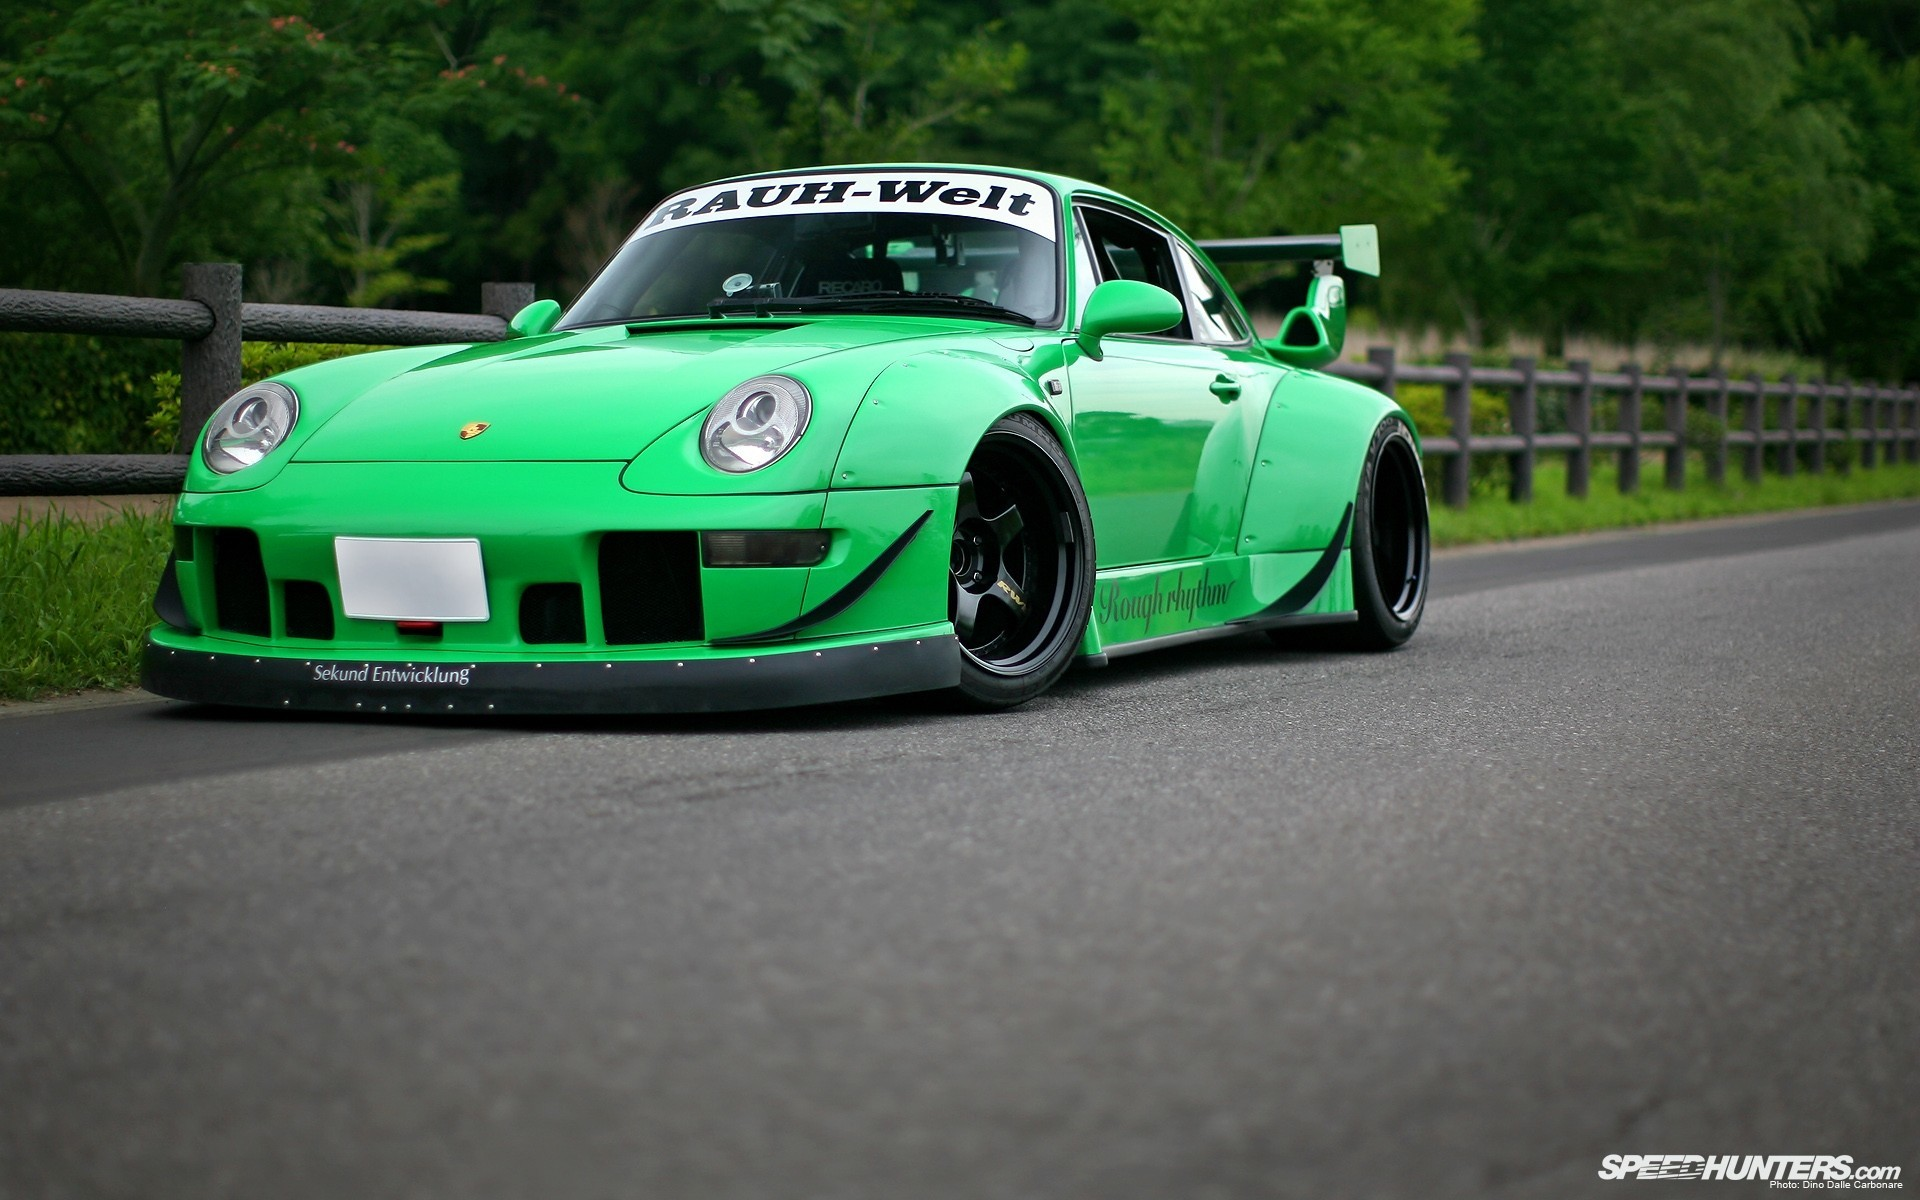 cars Porsche 911 Turbo S Rauh Welt Rauh Welt Begriff HD Wallpaper